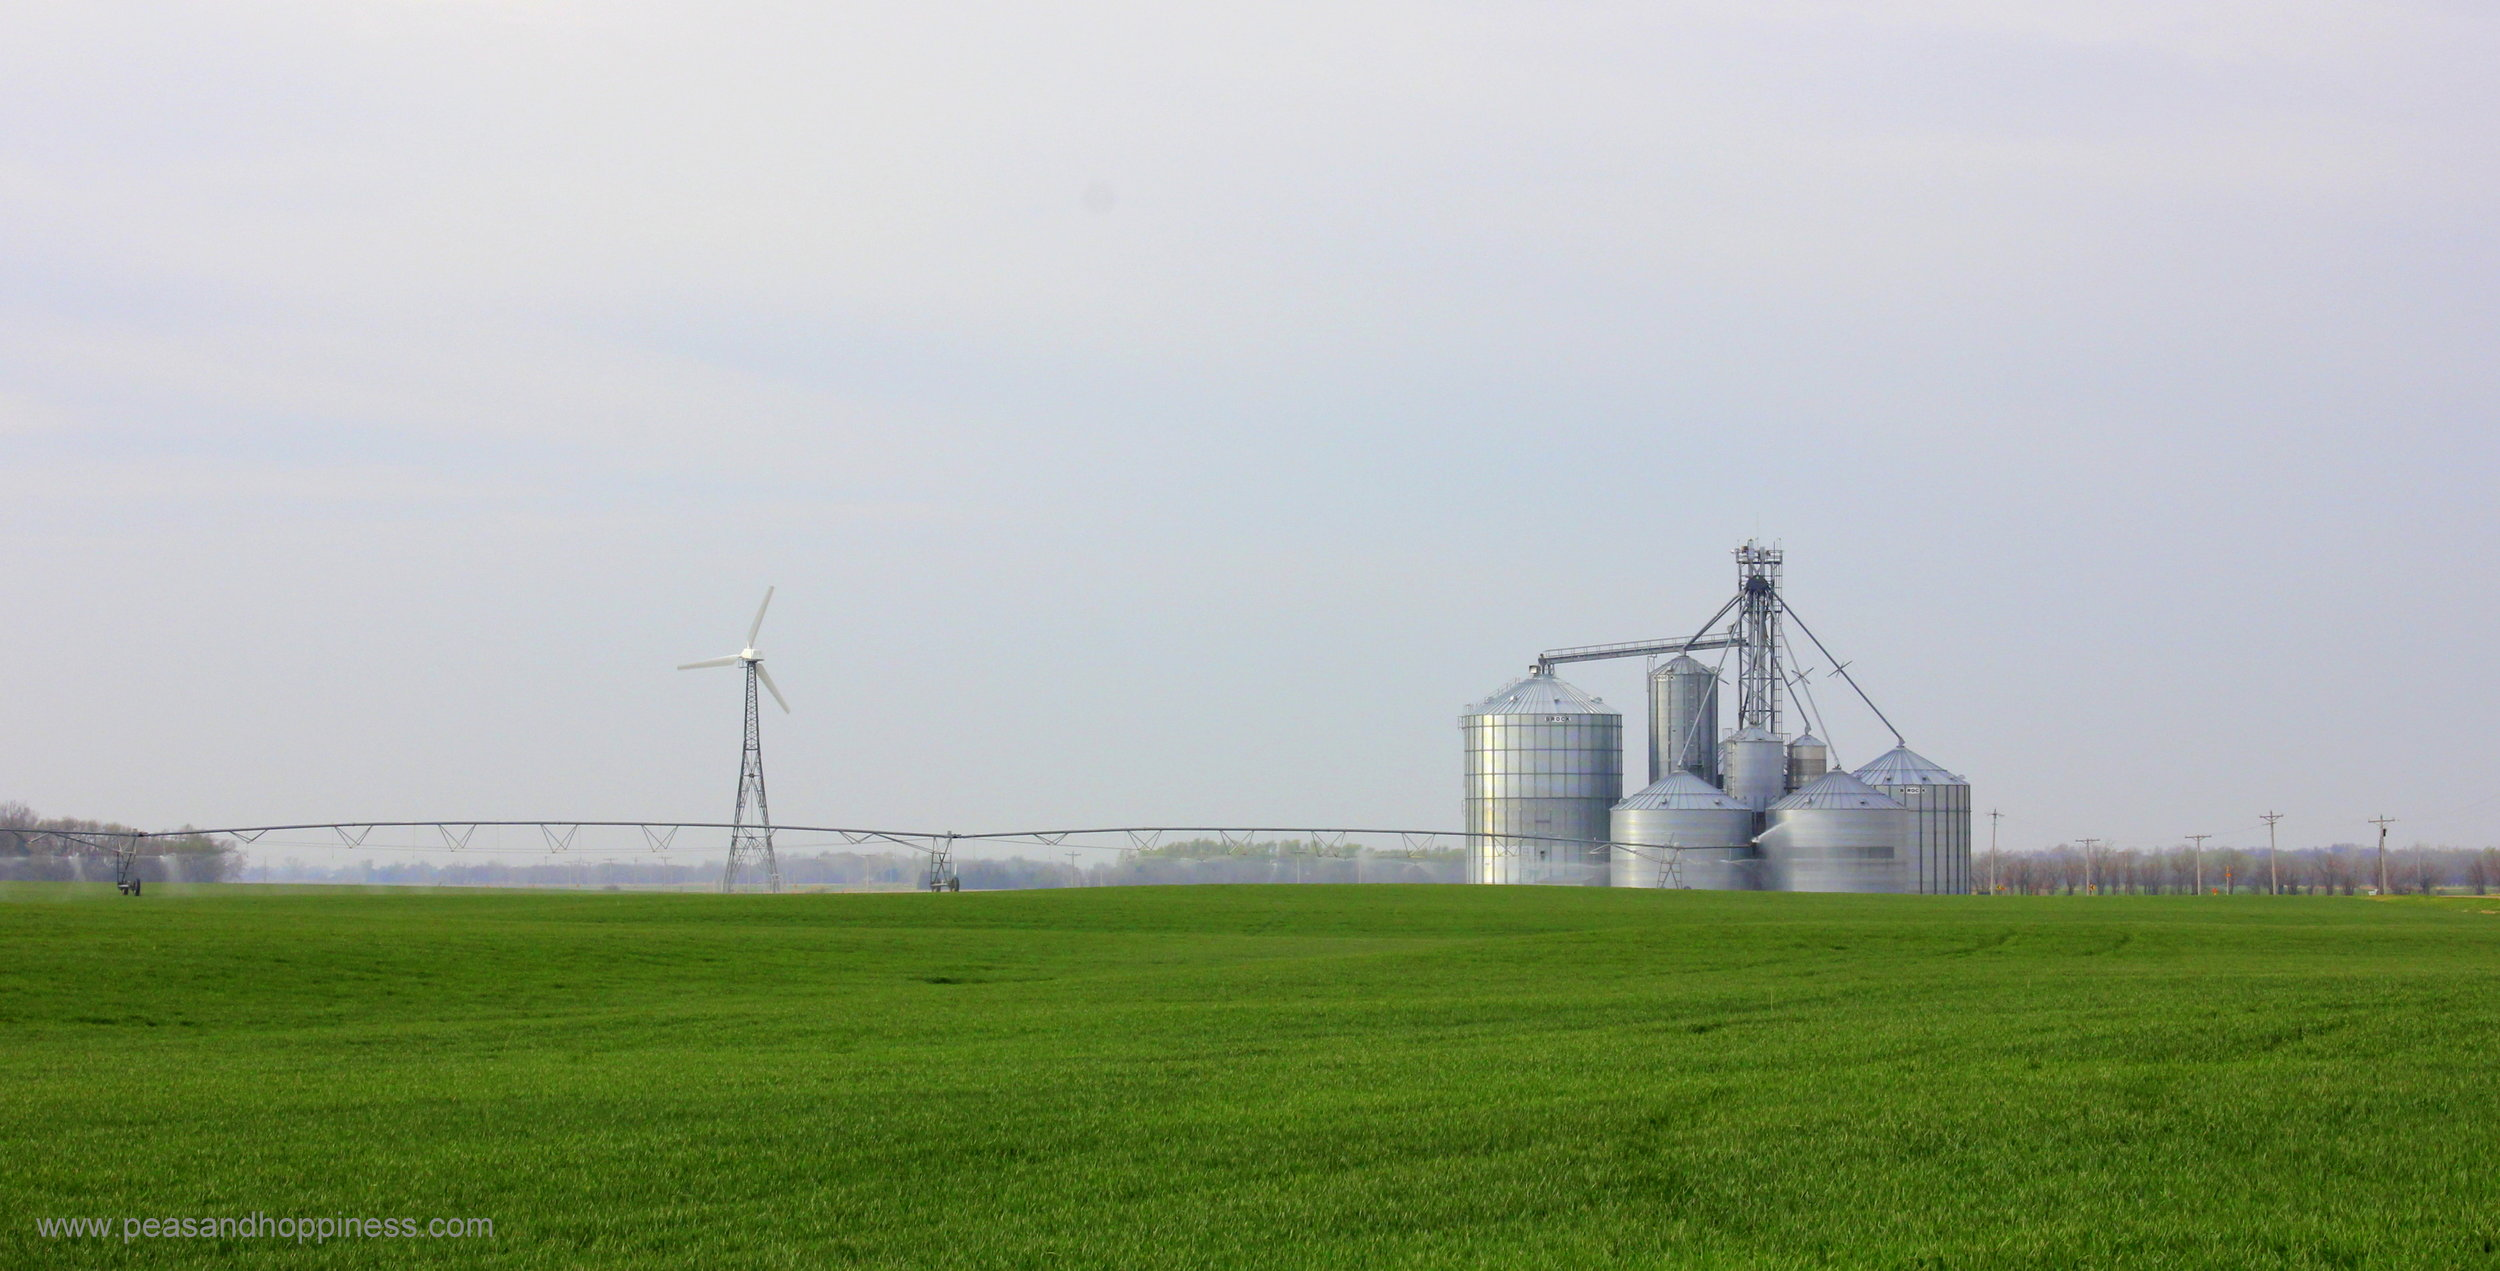 The wind turbine powers the irrigation system at Scheufler Farms